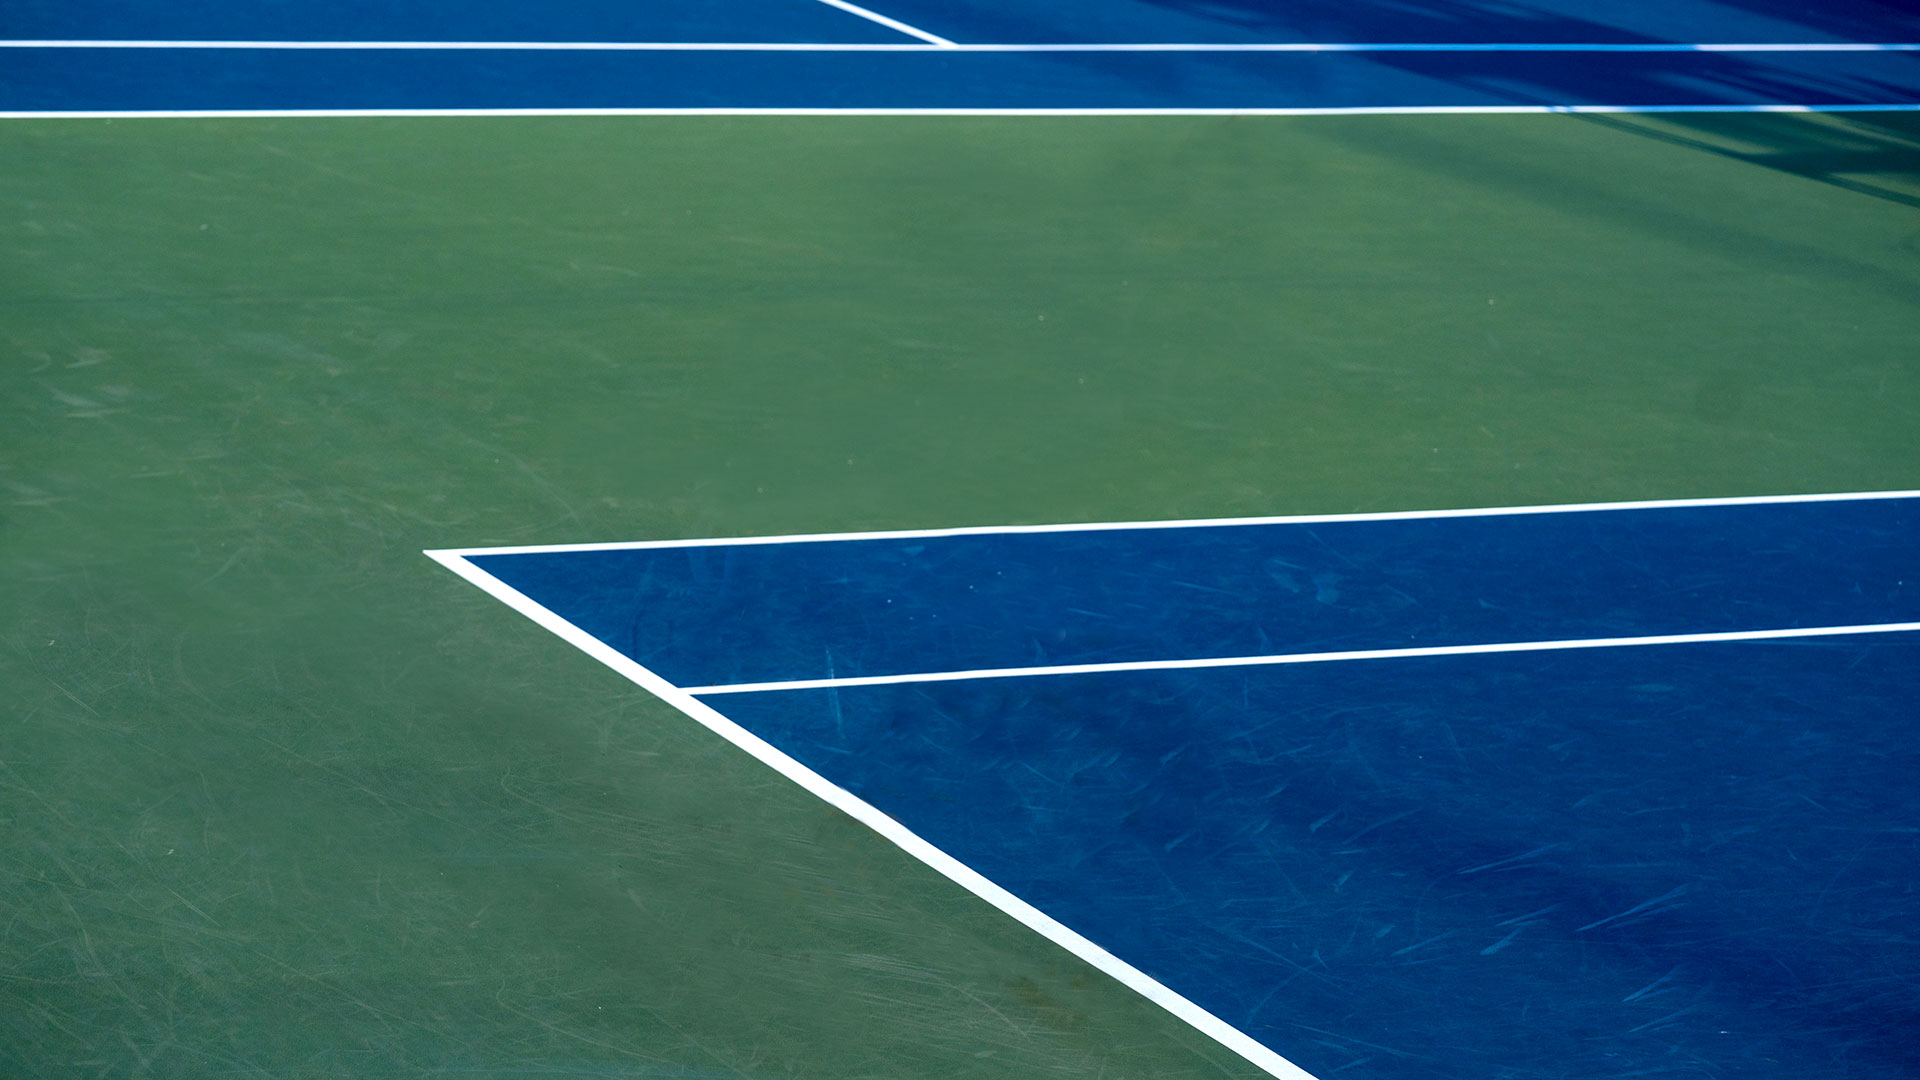 Download Tennis Video Conference